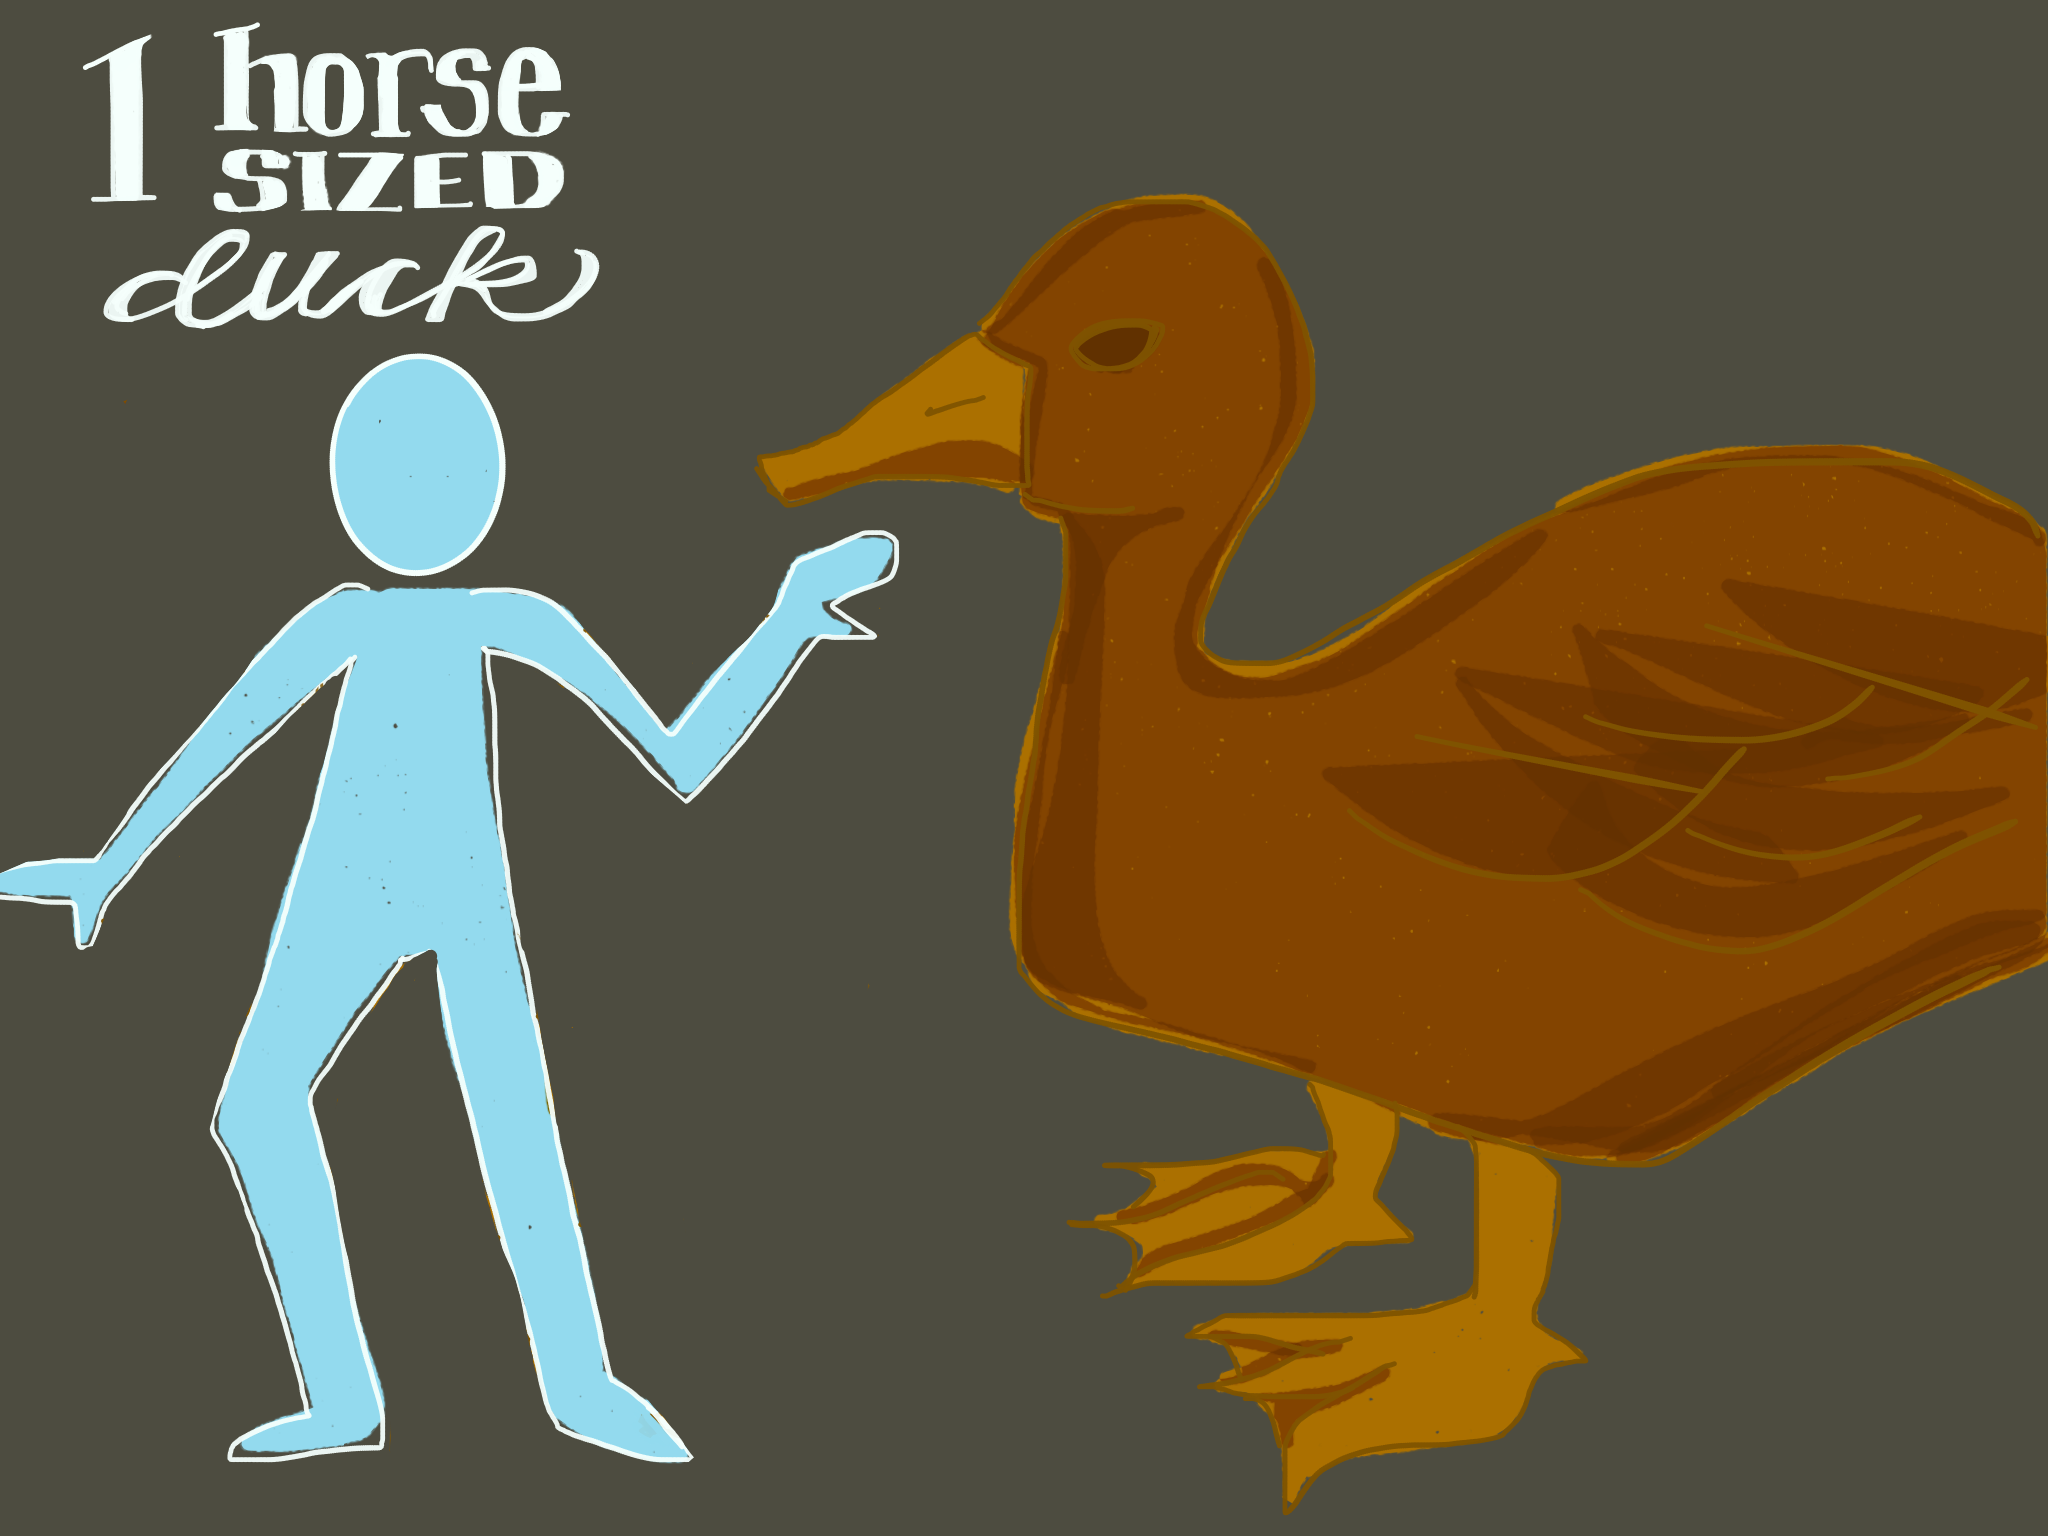 One horse sized duck